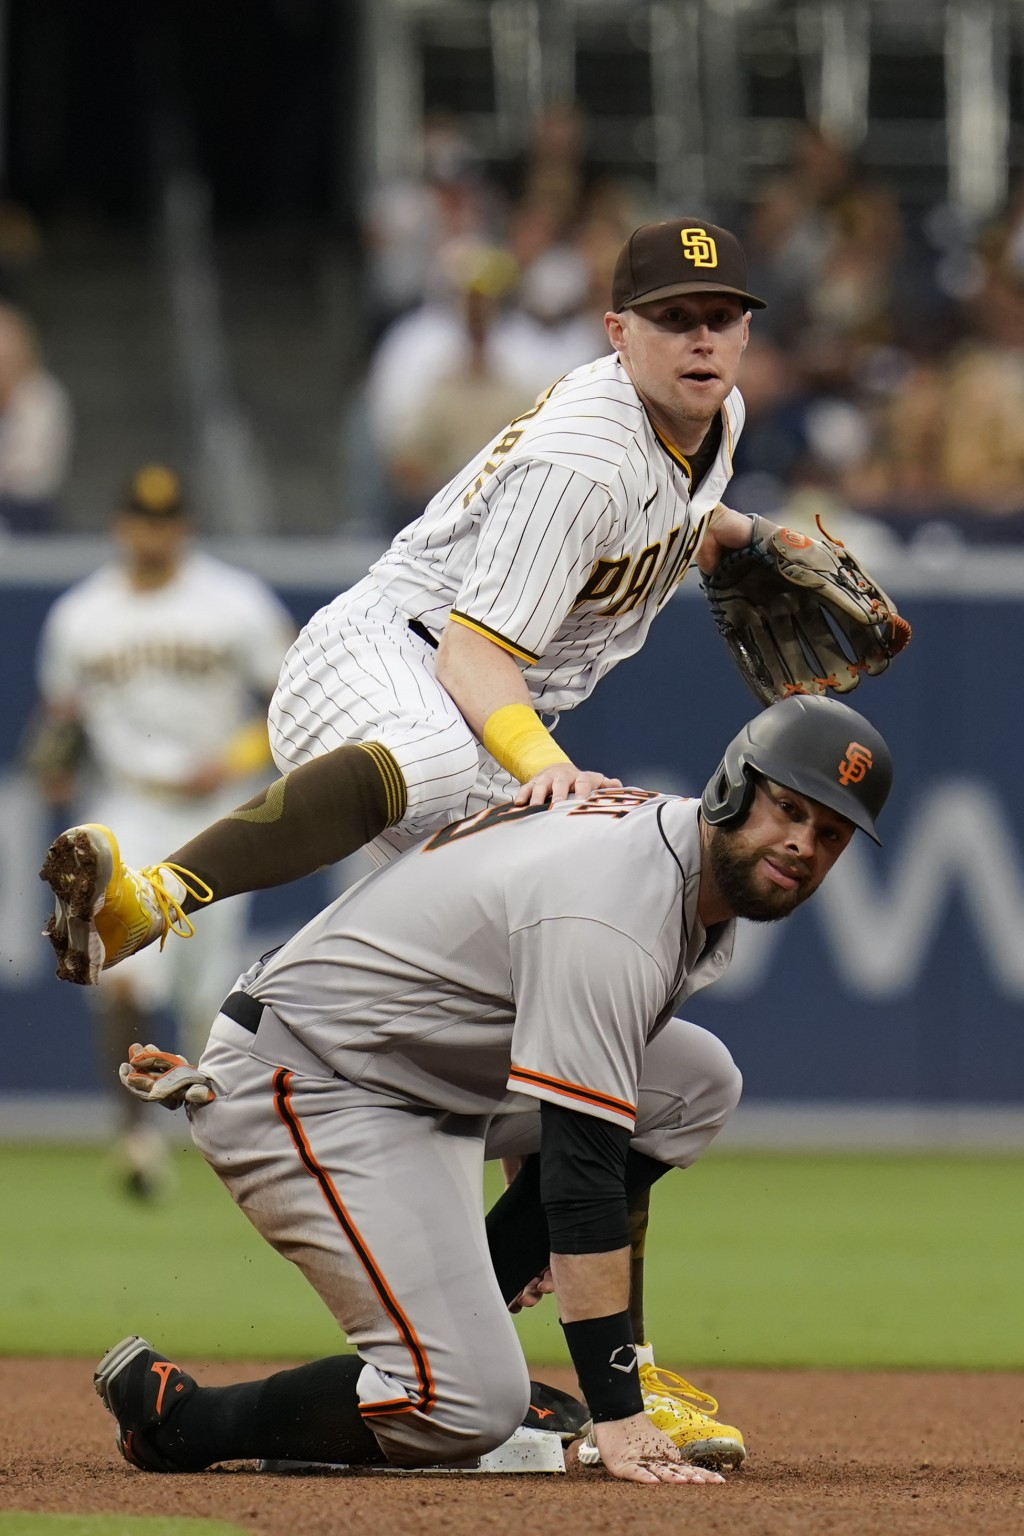 San Diego Padres second baseman Jake Cronenworth, top, watches his throw to first for a double play as San Francisco Giants' Brandon Belt looks on aft...